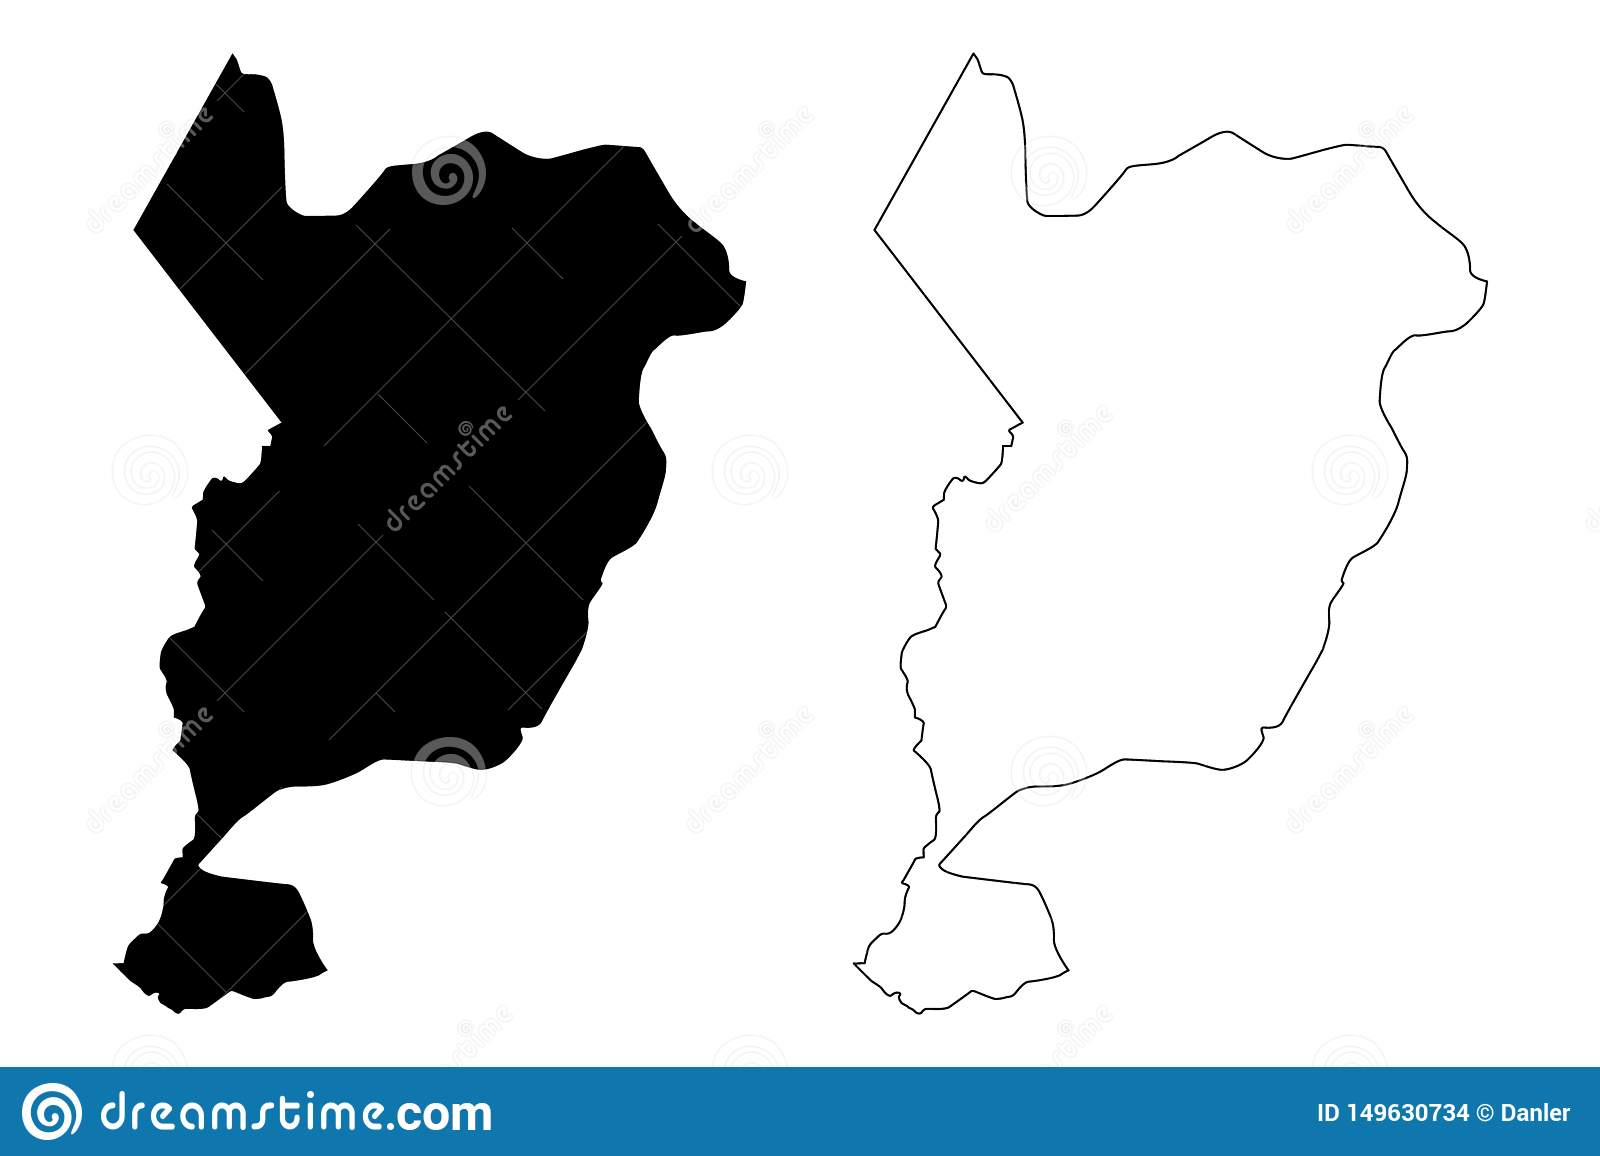 San Marcos Department Republic Of Guatemala, Departments Of ... on